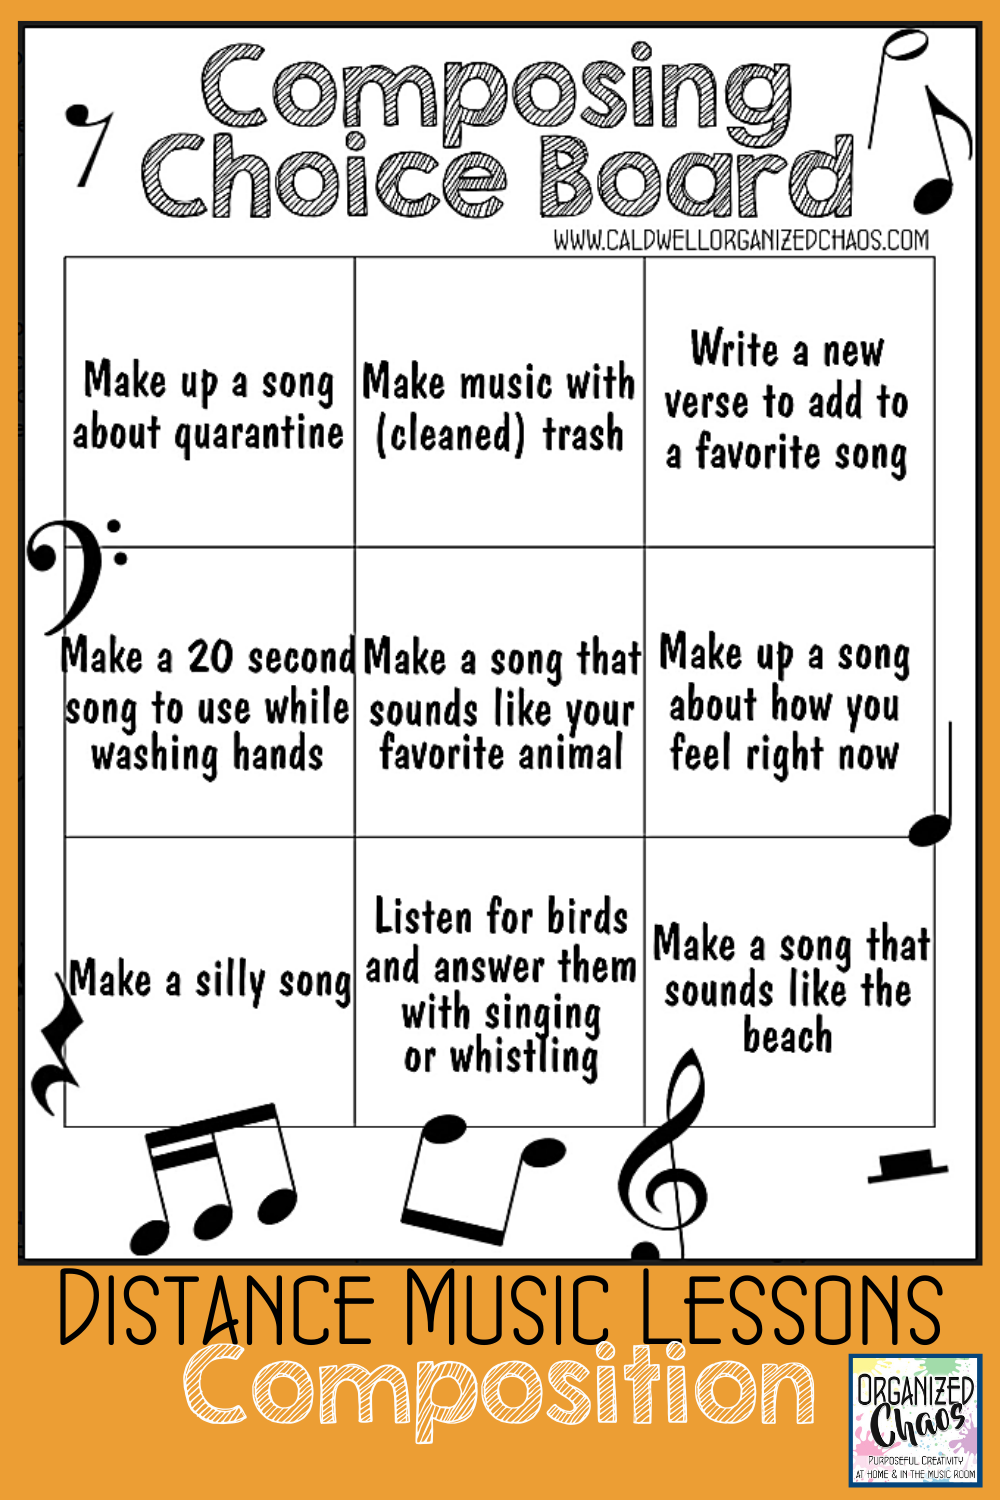 Distance Music Lesson Ideas Composition Music Lessons For Kids Online Music Lessons Elementary Music Lessons